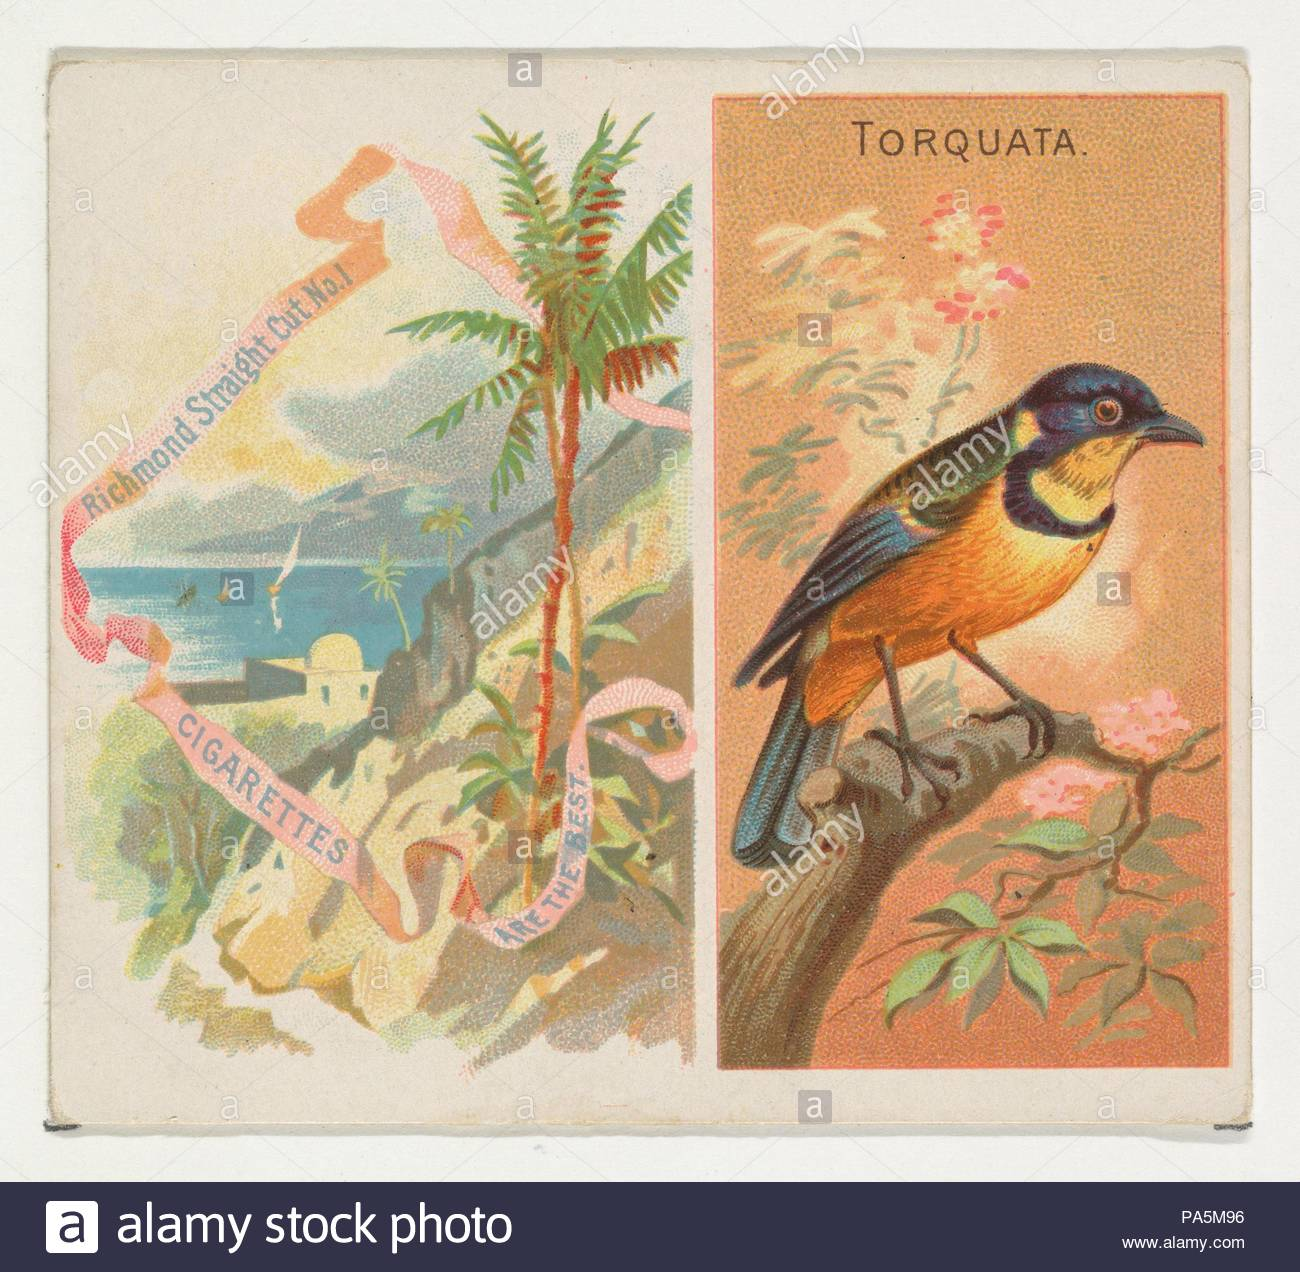 Torquata, from Birds of the Tropics series (N38) for Allen & Ginter Cigarettes, 1889, Commercial color lithograph, Sheet: 2 7/8 x 3 1/4 in. (7.3 x 8.3 cm), Trade cards from the 'Birds of the Tropics' series (N38), issued in 1889 in a set of 50 cards to promote Allen & Ginter brand cigarettes. This series is a physically larger version of the 'Birds of the Tropics' set (N5), including the corresponding small card design with other pictorial matter added. - Stock Image